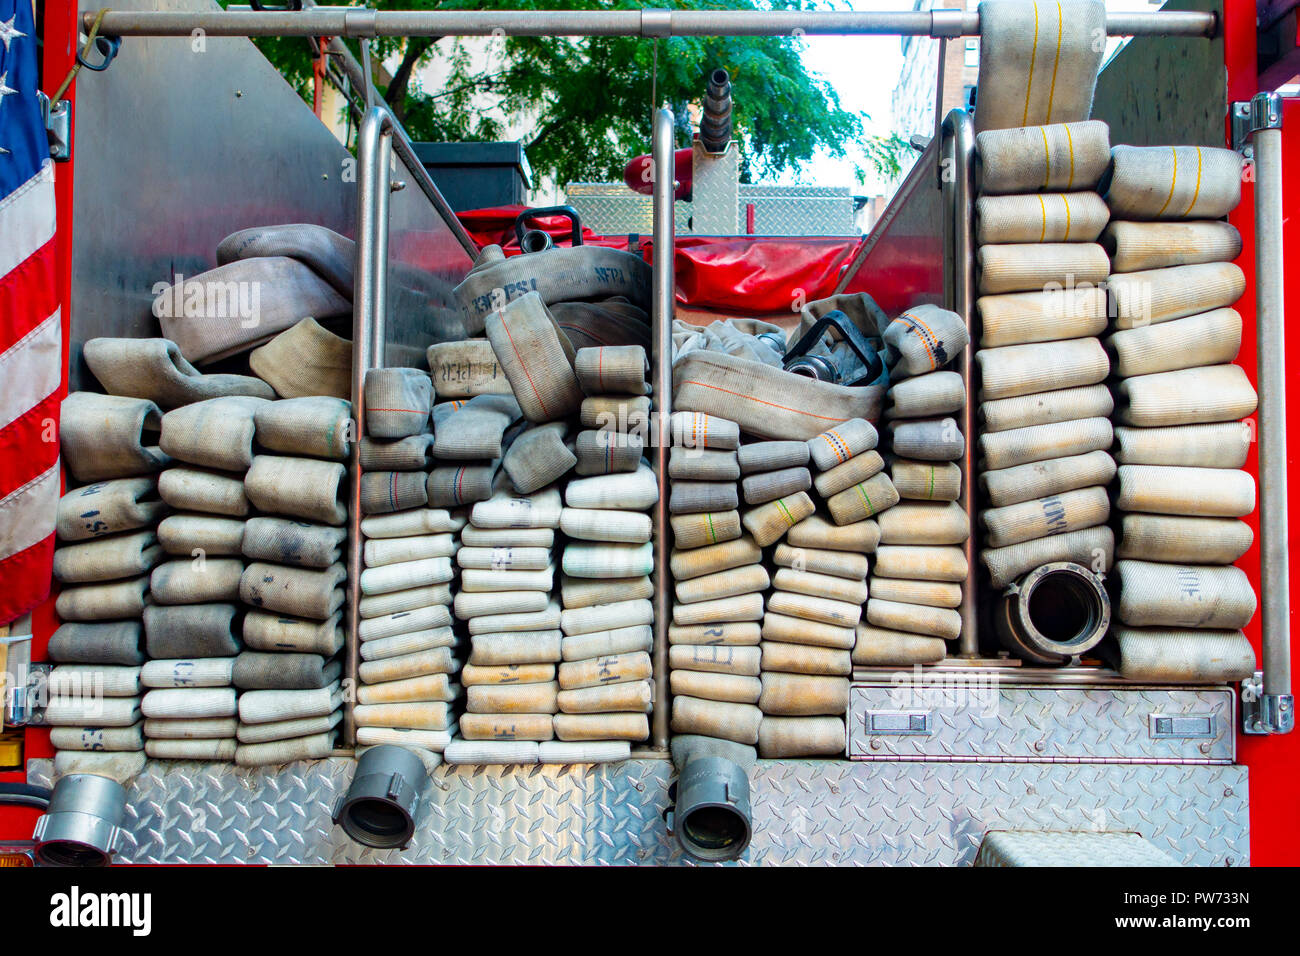 Fabric industrial strength fireman water hoses in the back of a firetruck - Stock Image